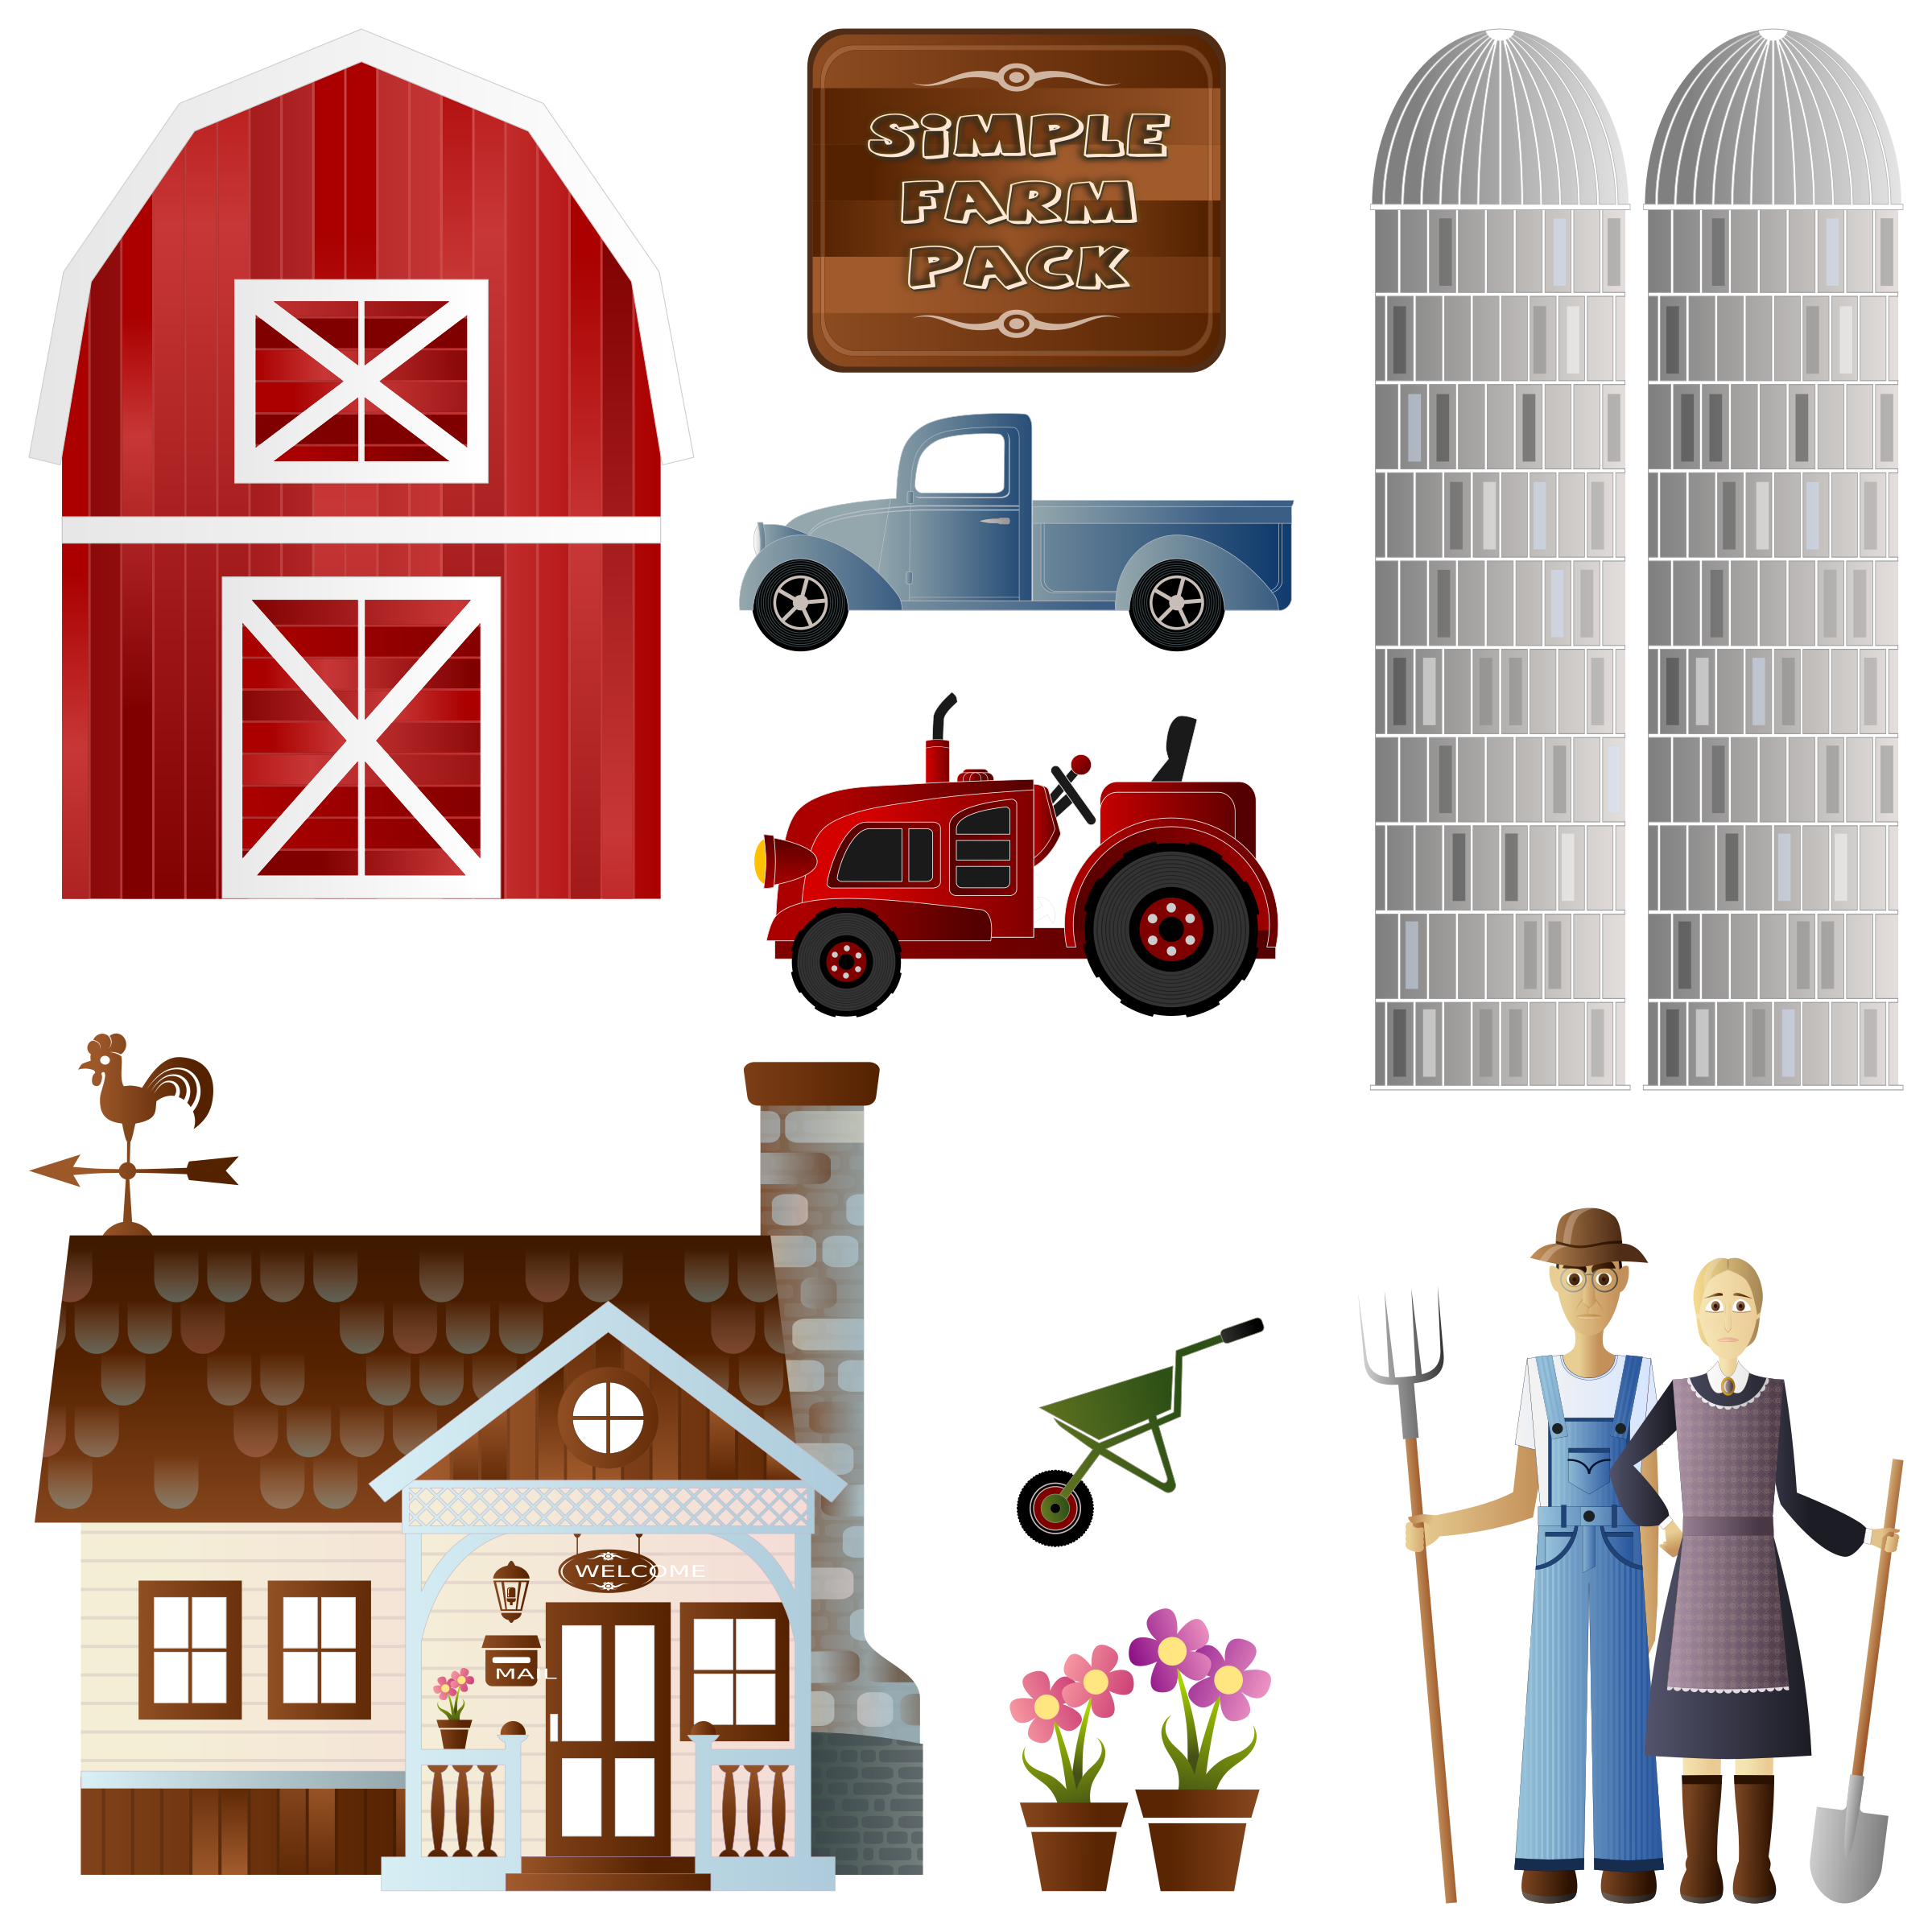 Farm house clipart transparent stock Clipart - Simple Farm Pack transparent stock